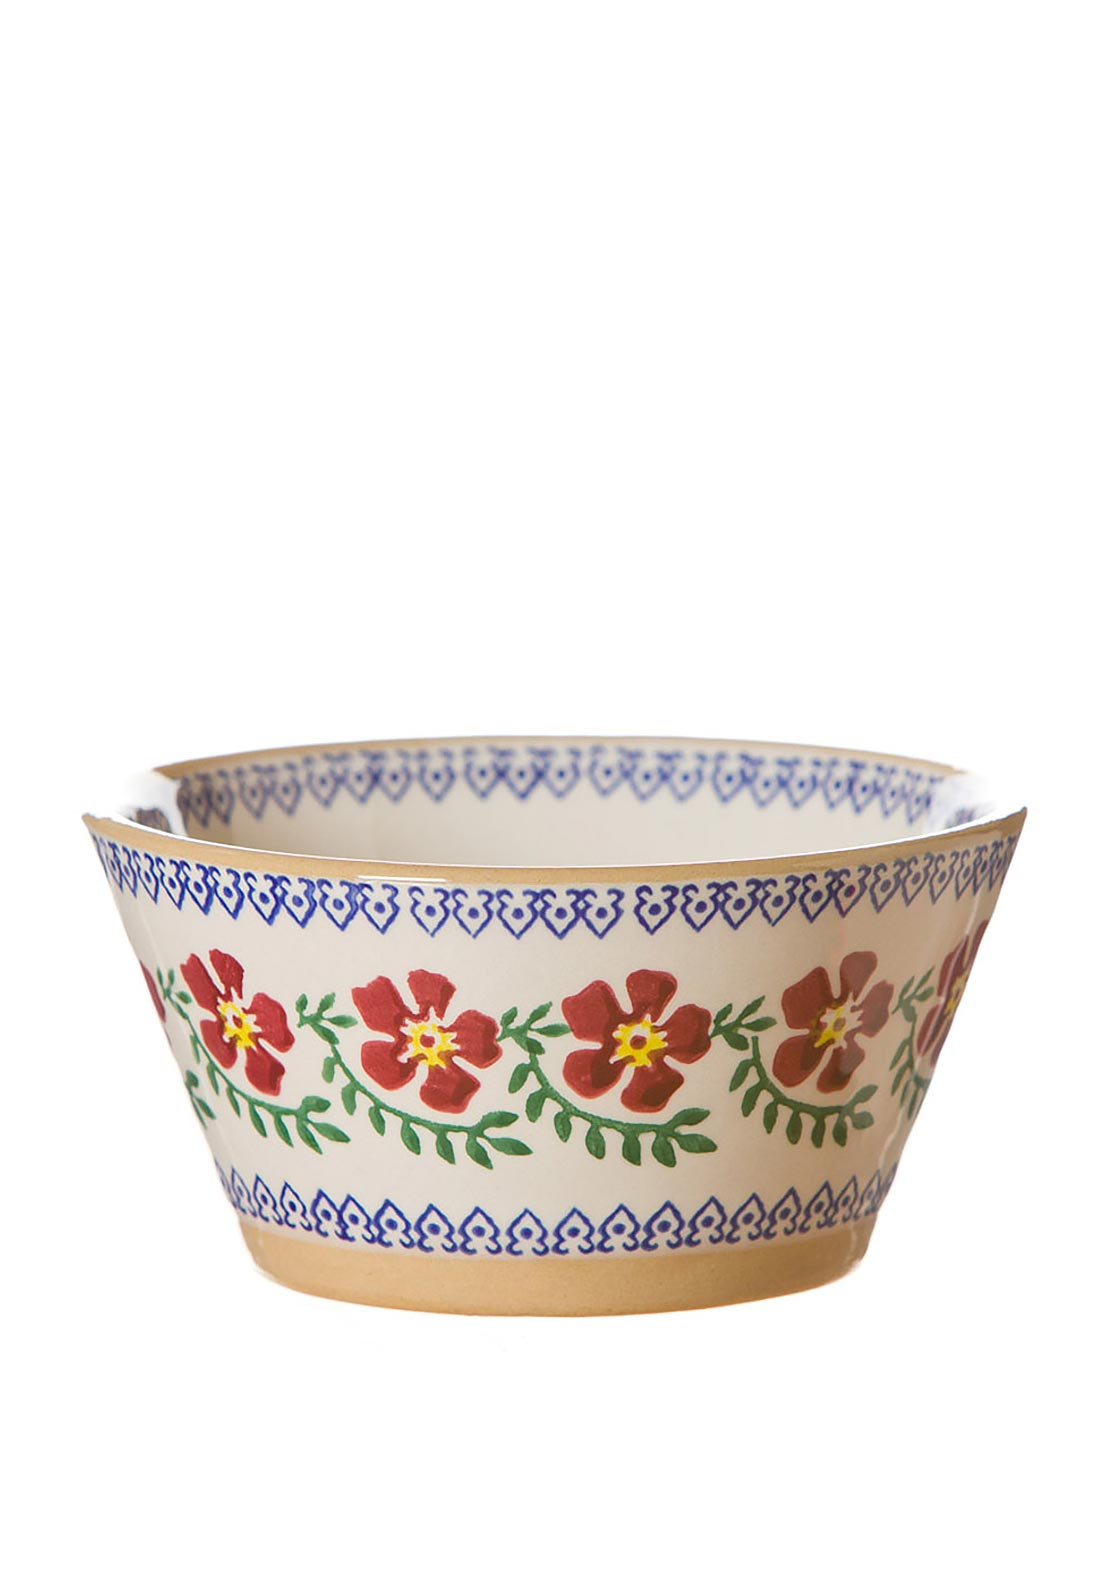 Nicholas Mosse Pottery Old Rose Angled Bowl, Small